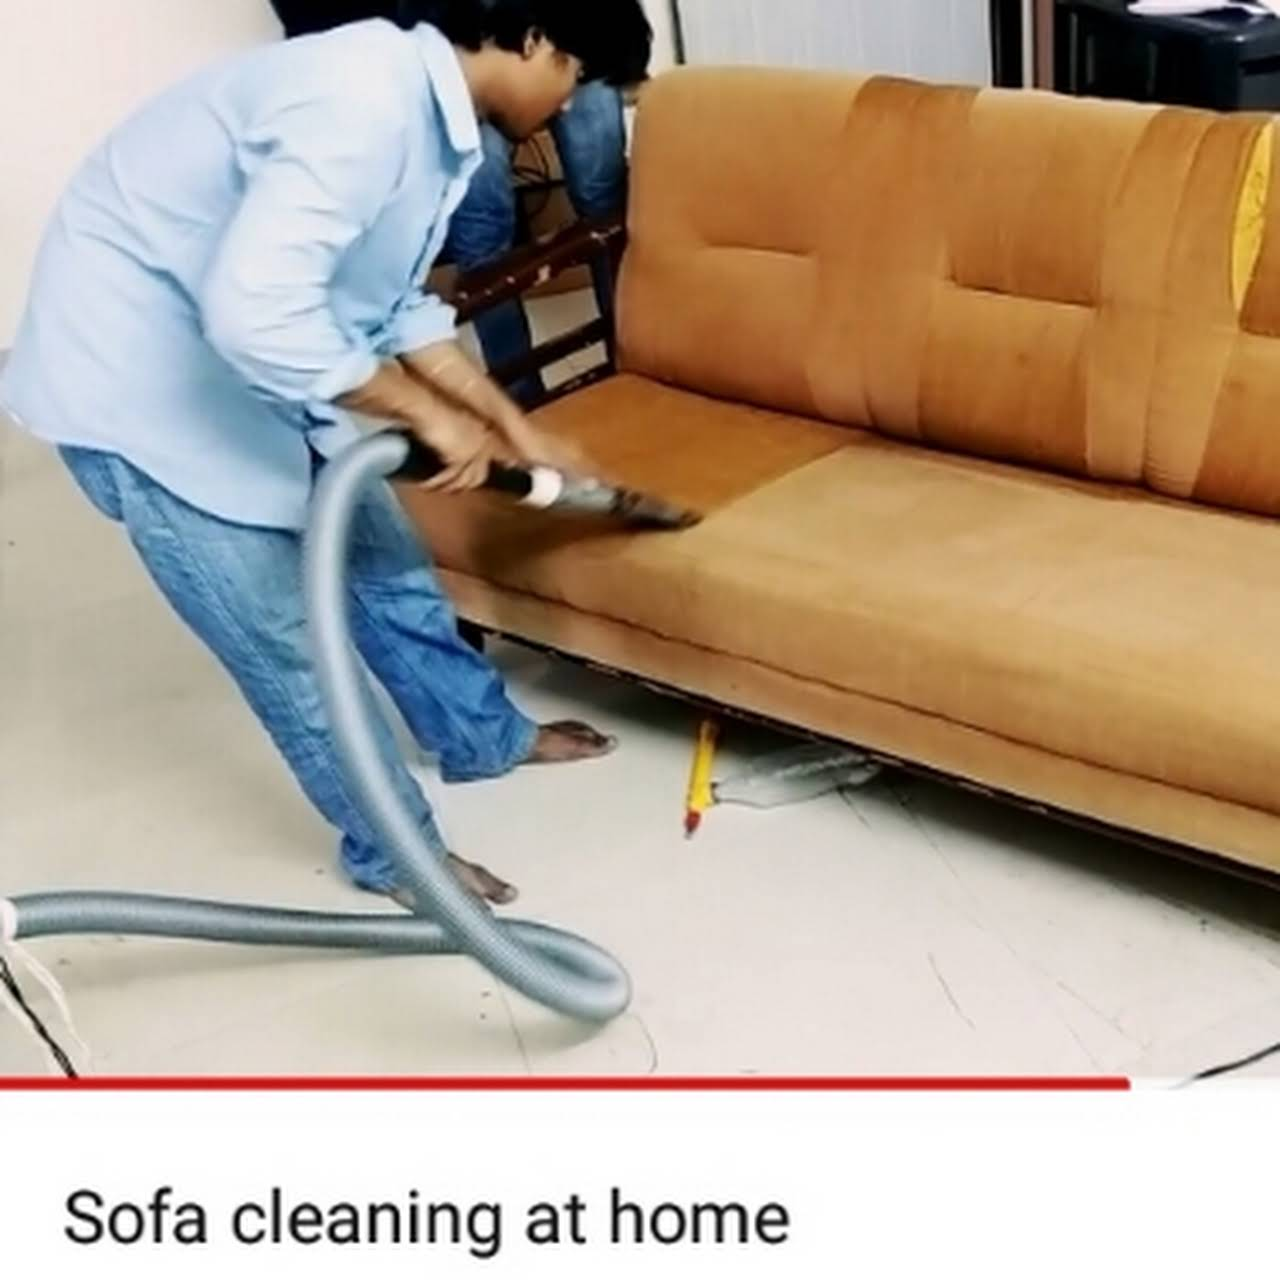 a1 sofa cleaning navi mumbai maharashtra small sectional bed with chaise z s enterprises cleaner repair furniture polish posted on aug 18 2018 services all over